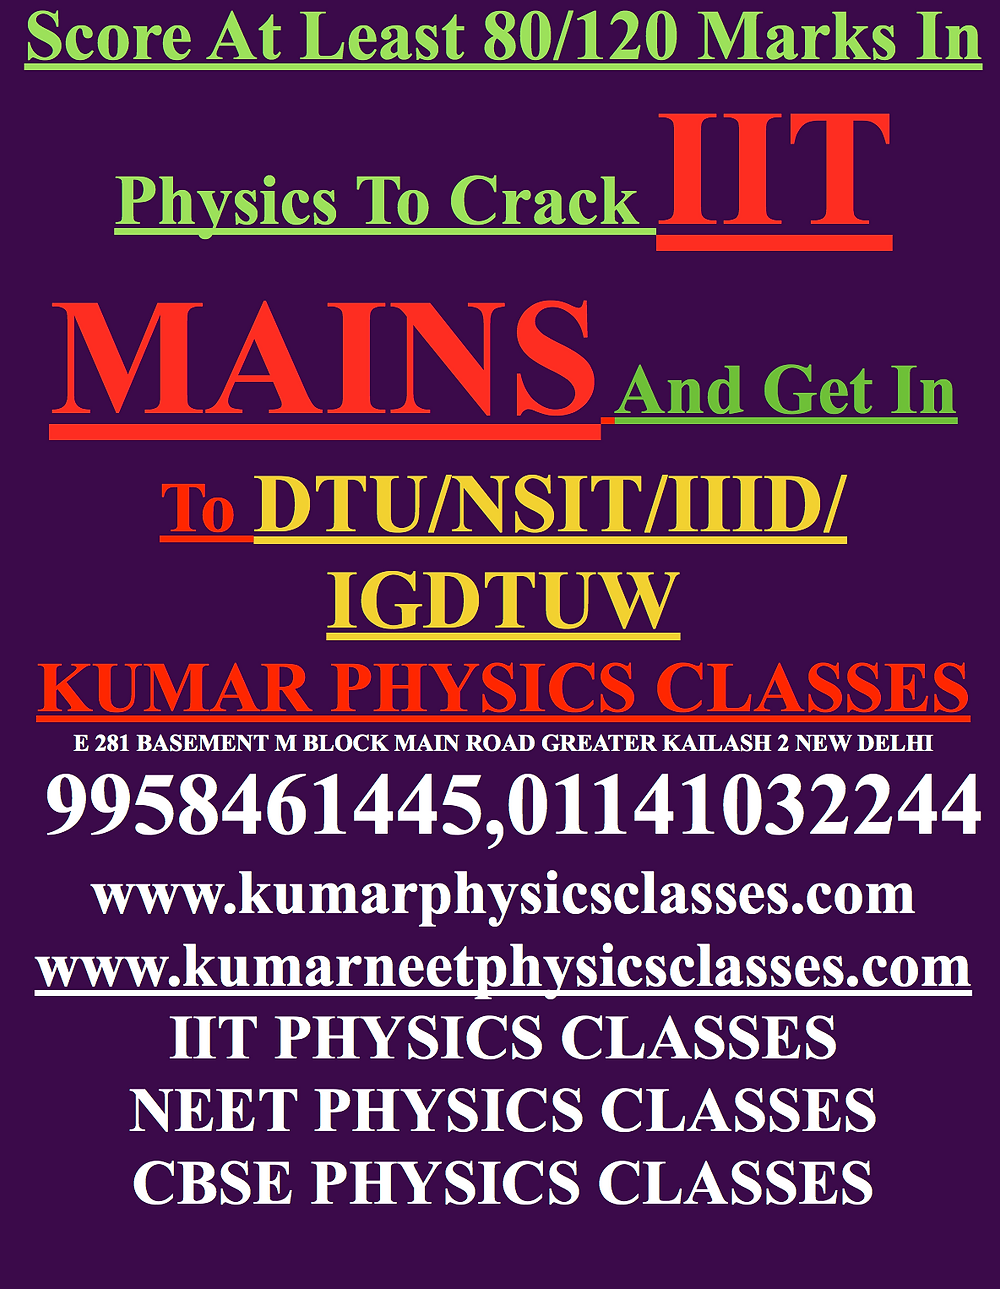 Score At Least 80/120 Marks In Physics To Crack IIT MAINS And Get In To DTU/NSIT/III KUMAR PHYSICS CLASSES E 281 BASEMENT M BLOCK MAIN ROAD GREATER KAILASH 2 NEW DELHI  9958461445,01141032244 www.kumarphysicsclasses.com www.kumarneetphysicsclasses.com IIT PHYSICS CLASSES NEET PHYSICS CLASSES CBSE PHYSICS CLASSES Crack NEET/IIT